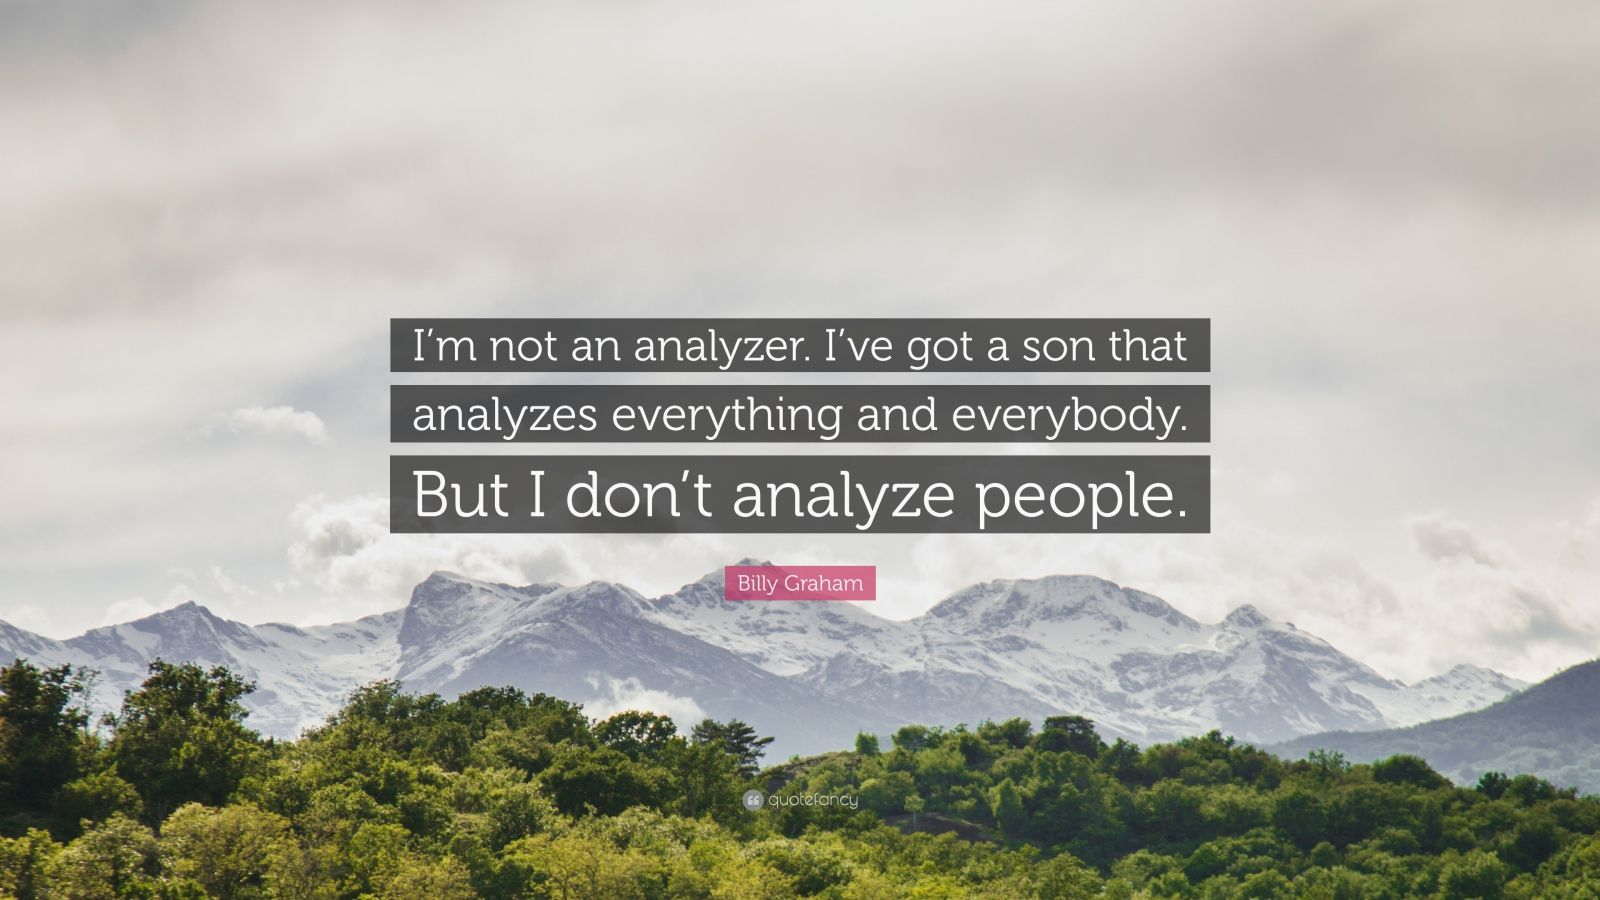 """Billy Graham Quote: """"I'm not an analyzer. I've got a son that analyzes everything and everybody. But I don't analyze people."""""""